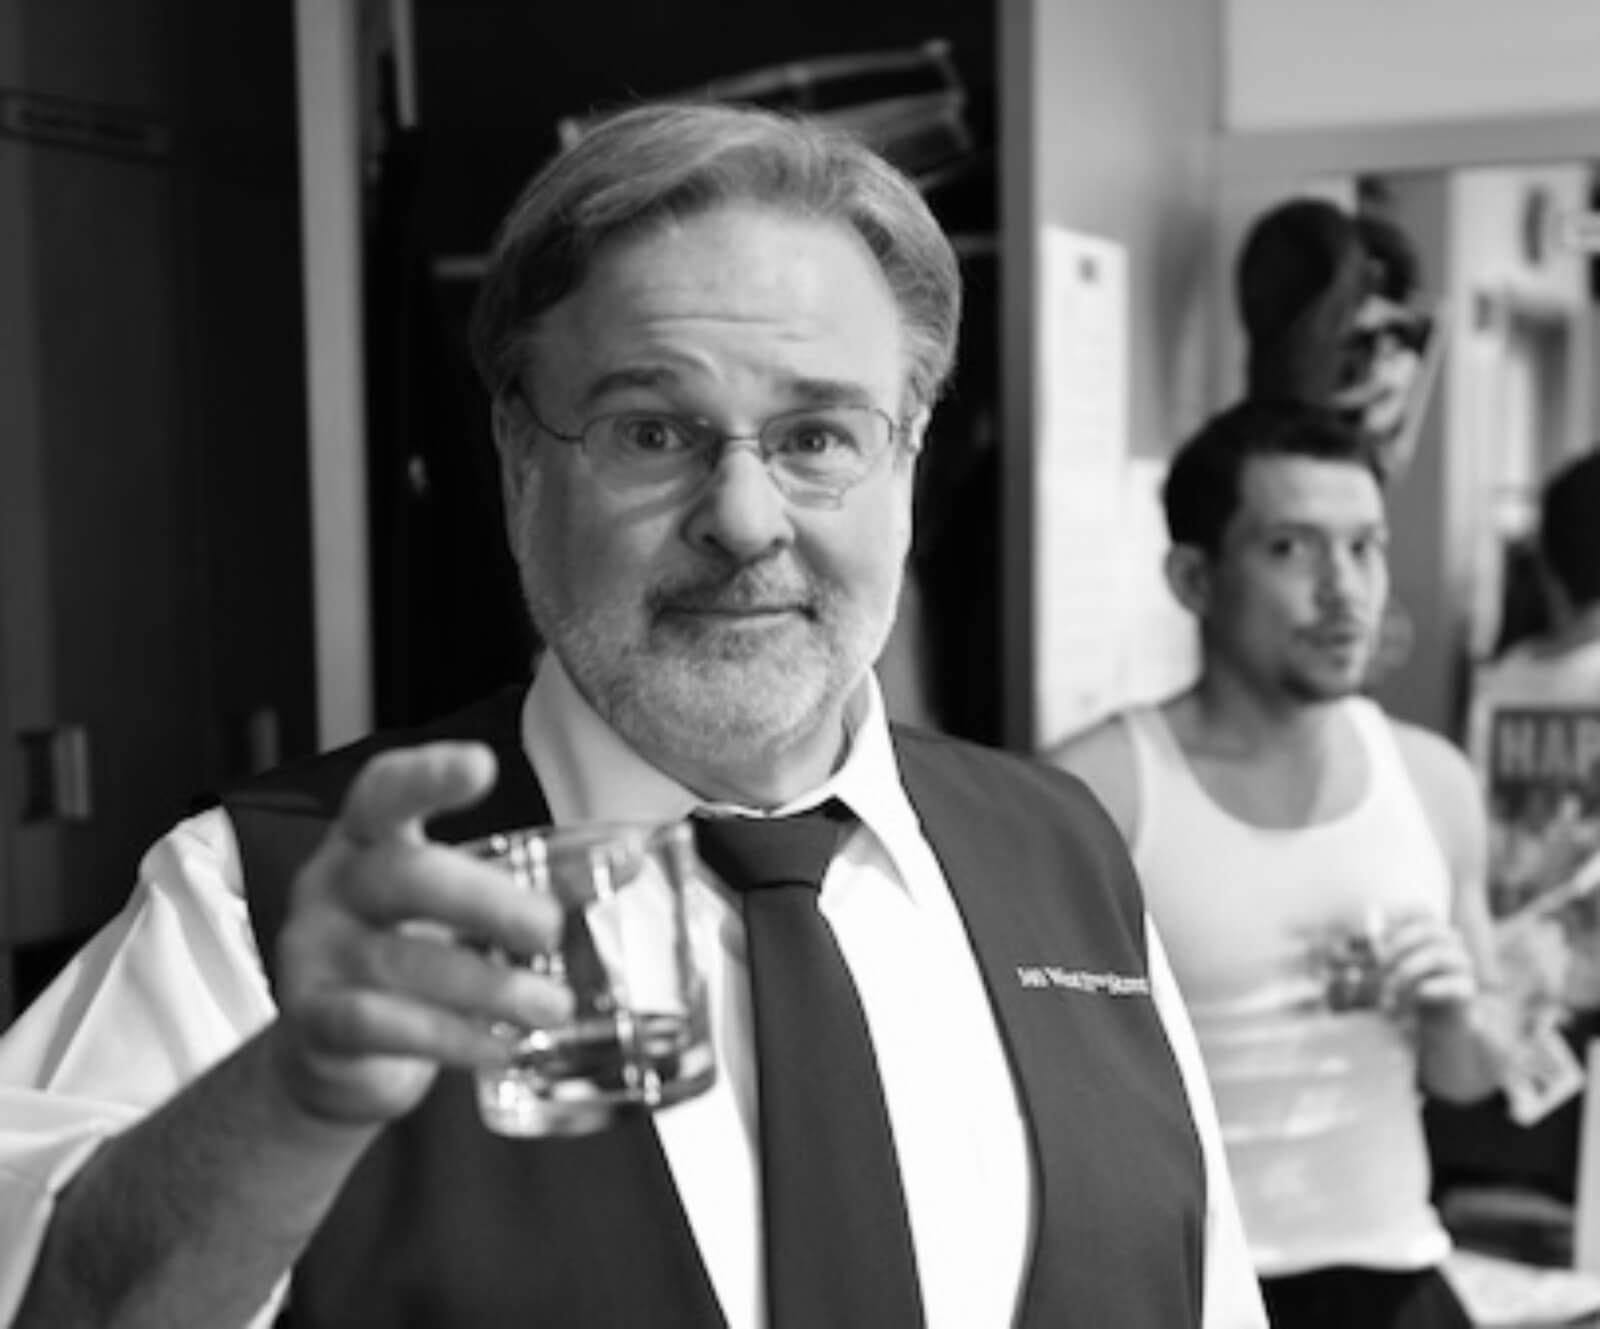 black and white photo of Fred Applegate toasting the camera with Miguel Cervantes in the background backstage.